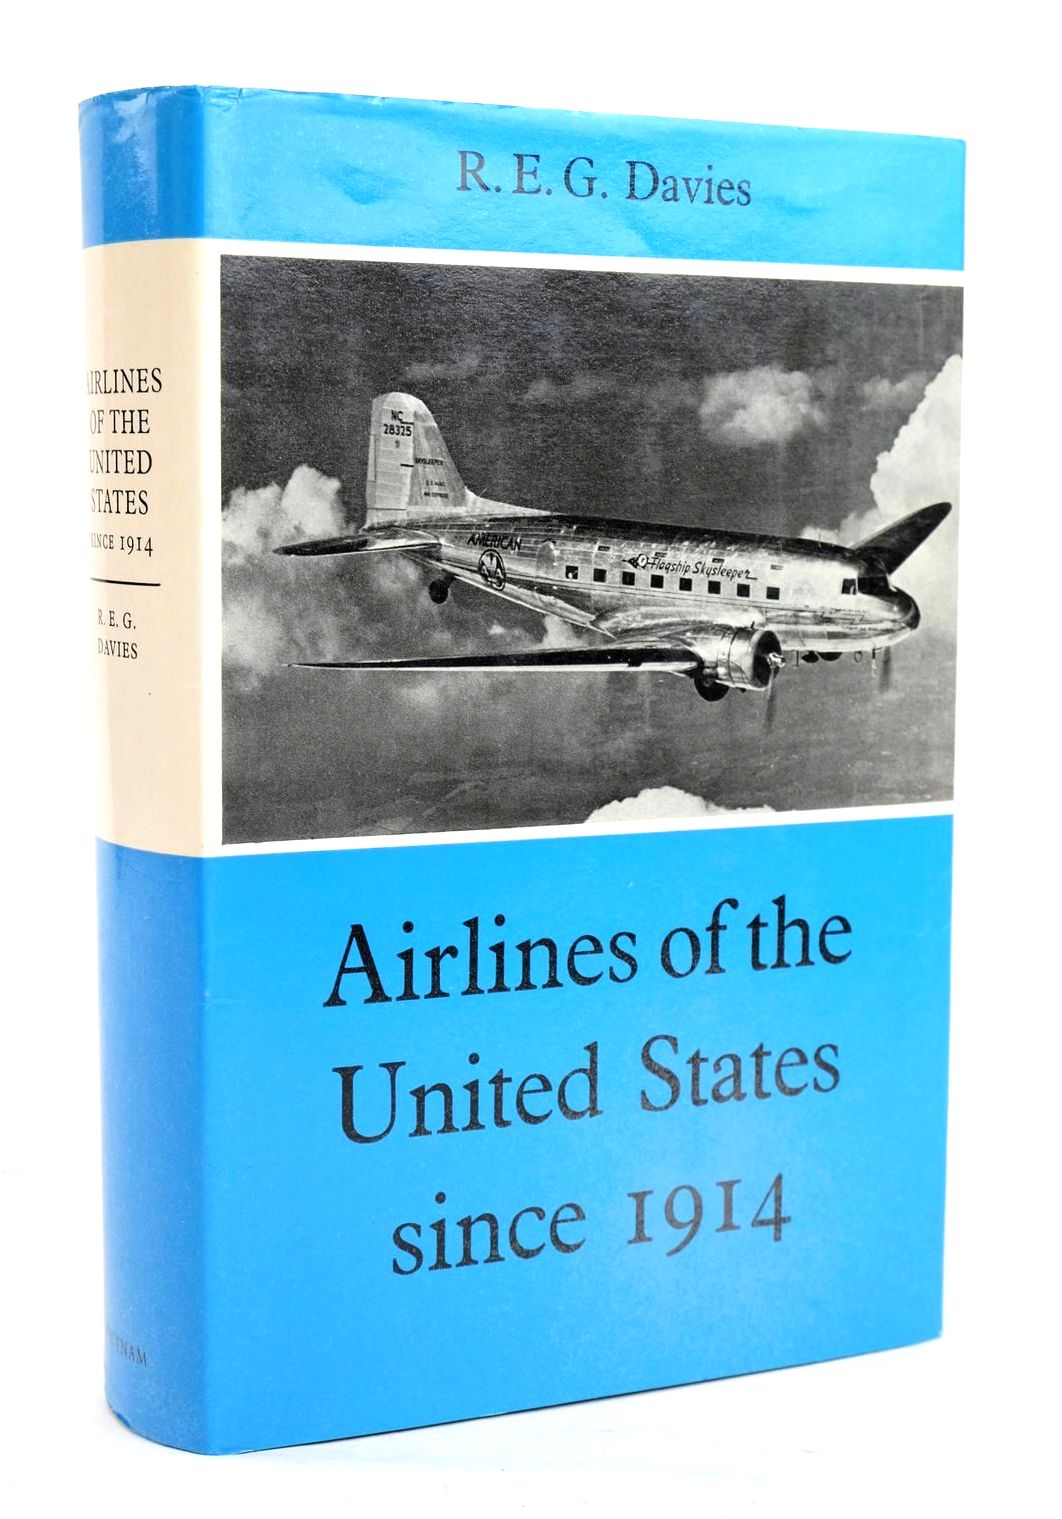 Photo of AIRLINES OF THE UNITED STATES SINCE 1914 written by Davies, R.E.G. published by Putnam (STOCK CODE: 1319601)  for sale by Stella & Rose's Books